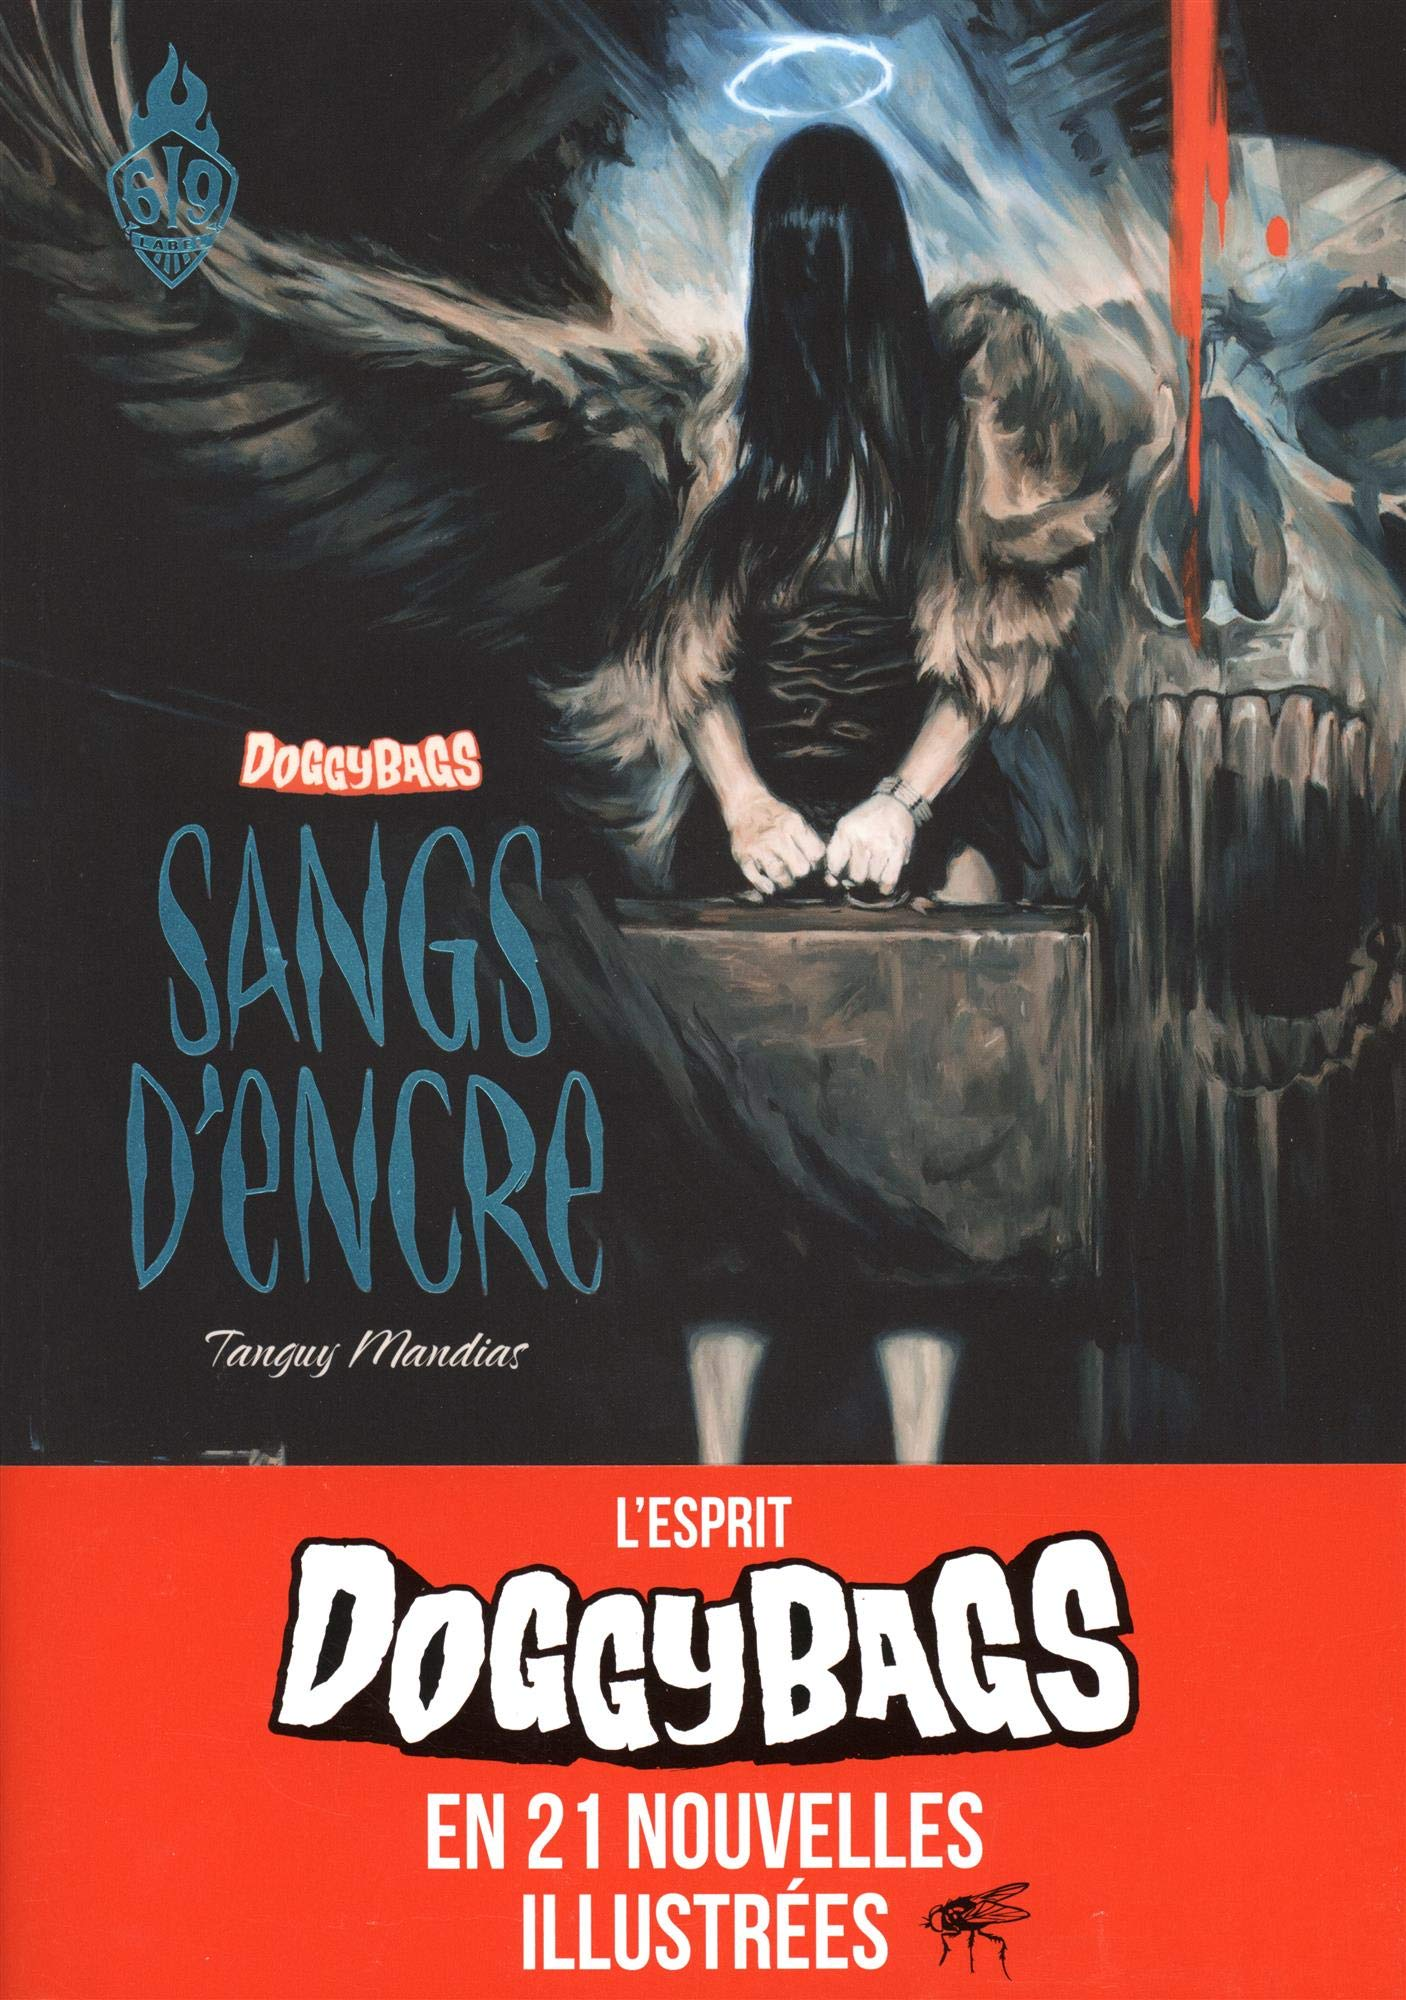 Doggybags - Sangs d'encre 1